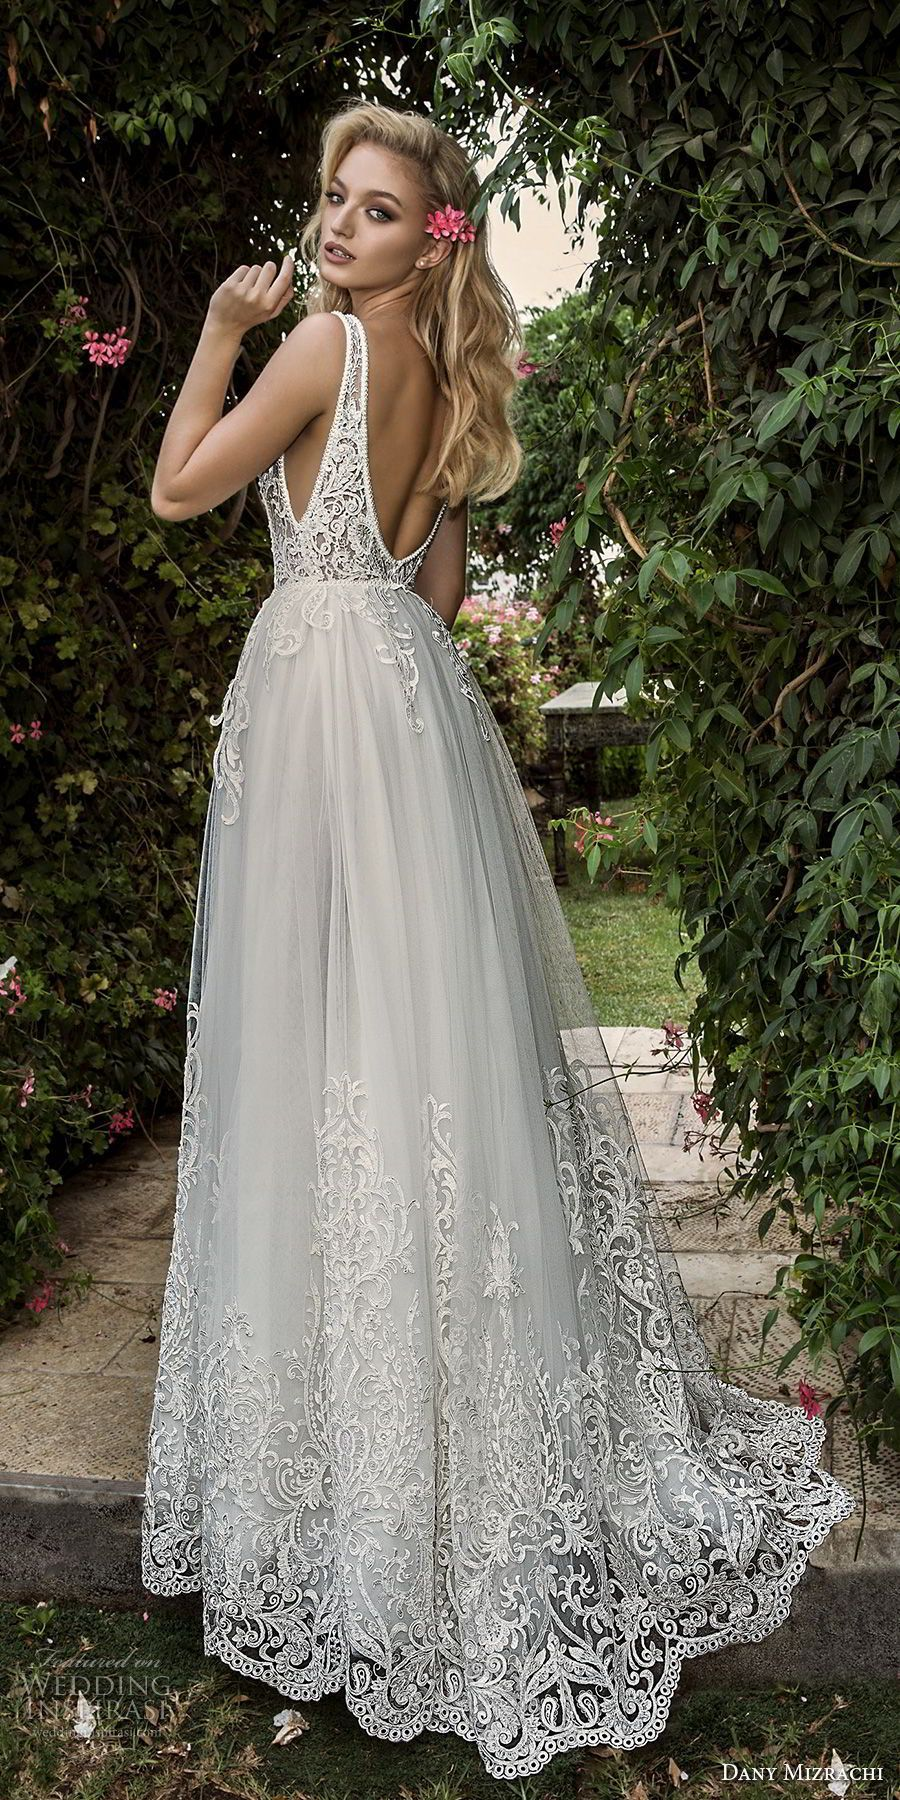 Lace wedding dress open back say yes dress  dany mizrachi spring  bridal sleeveless with strap deep plunging